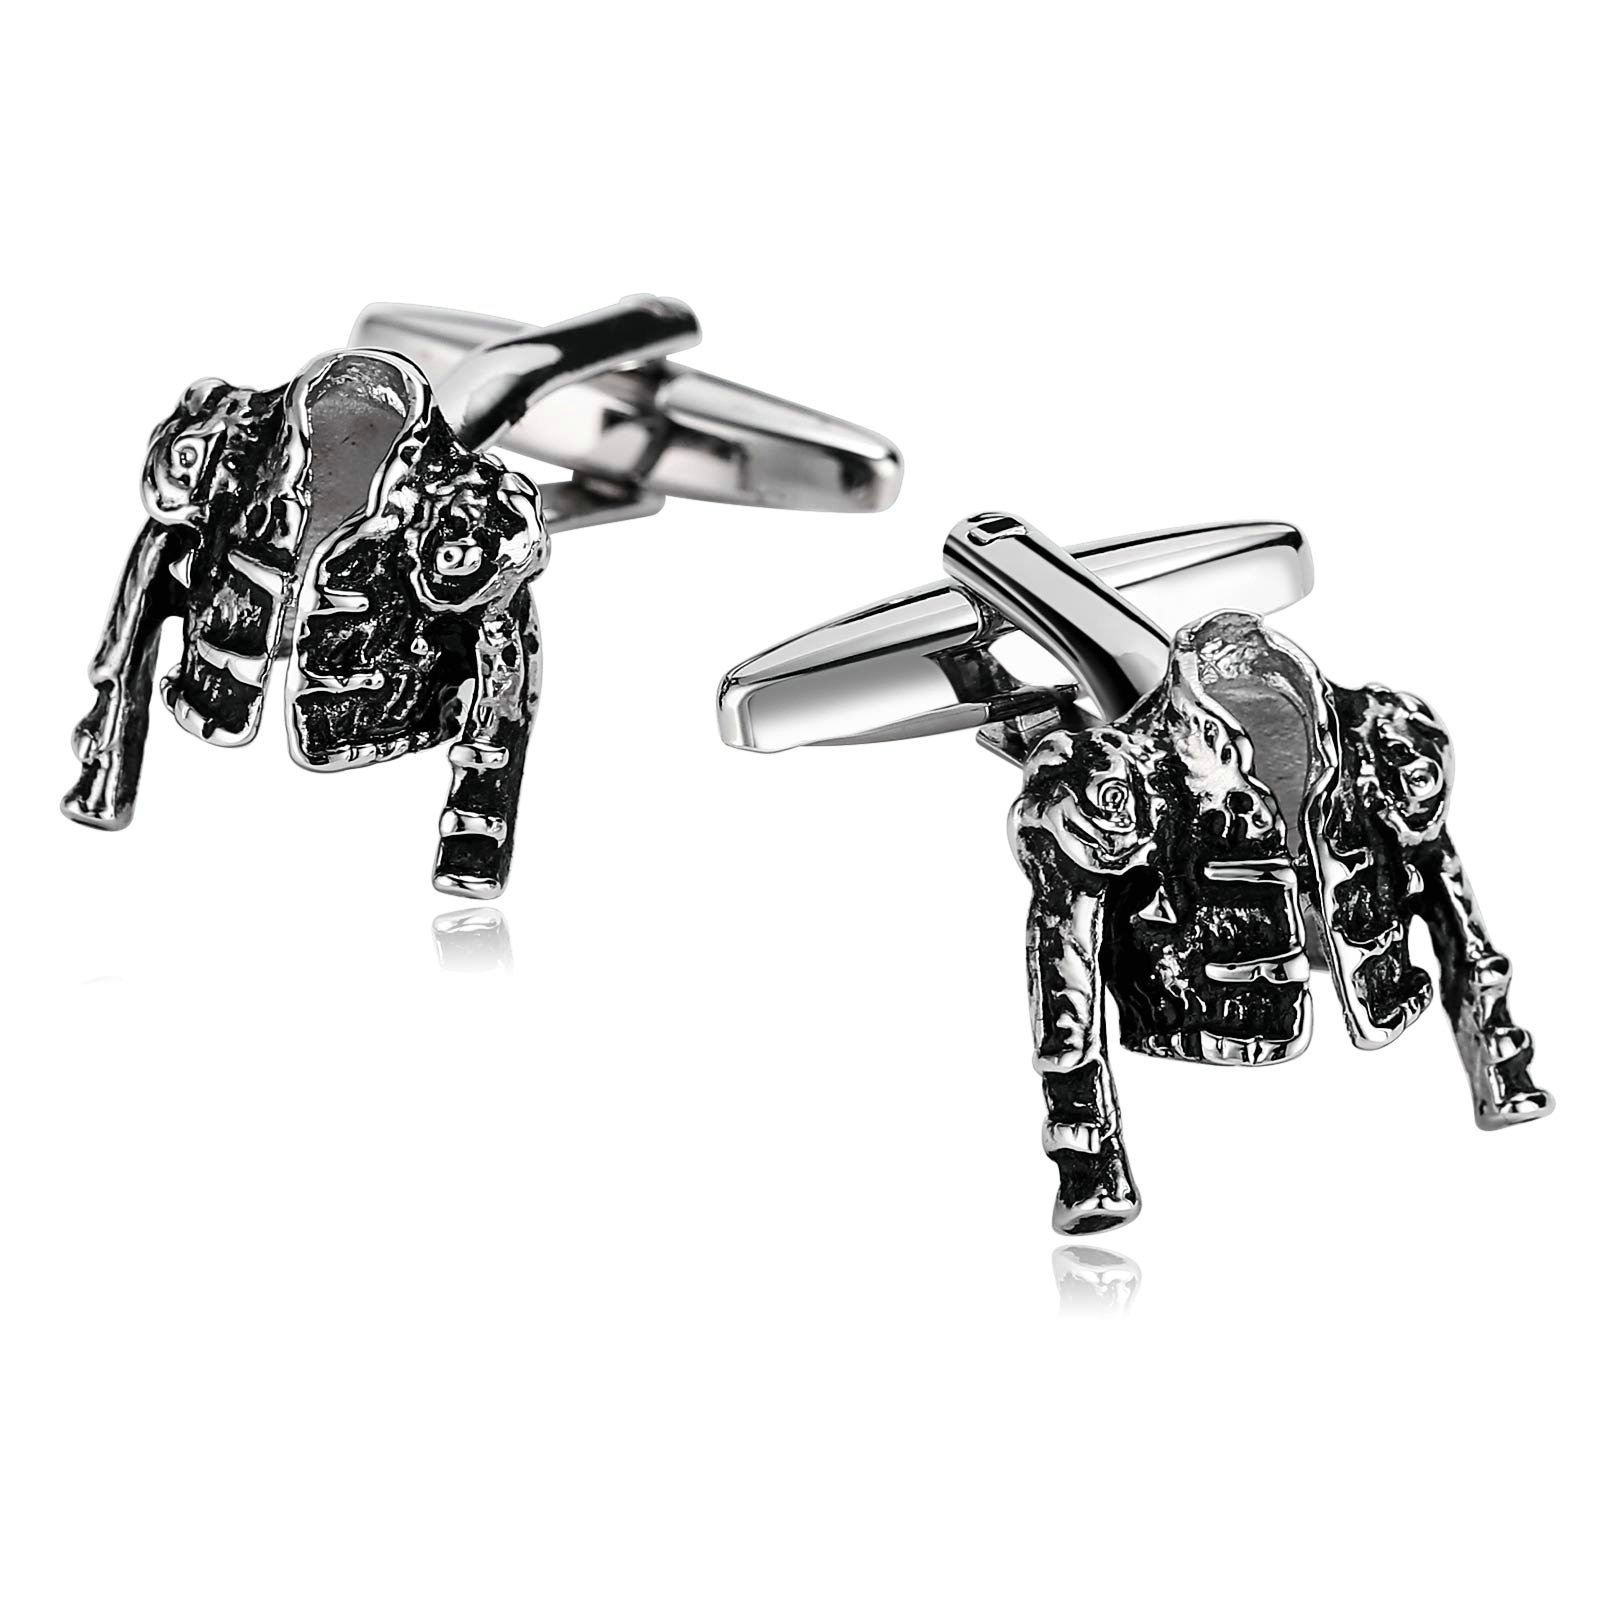 Bishilin Jewellery Cuff Links Stainless Steel Cuff Links for Mens Clothes Jacket Silver Black Shirt Tuxedo Anniversary